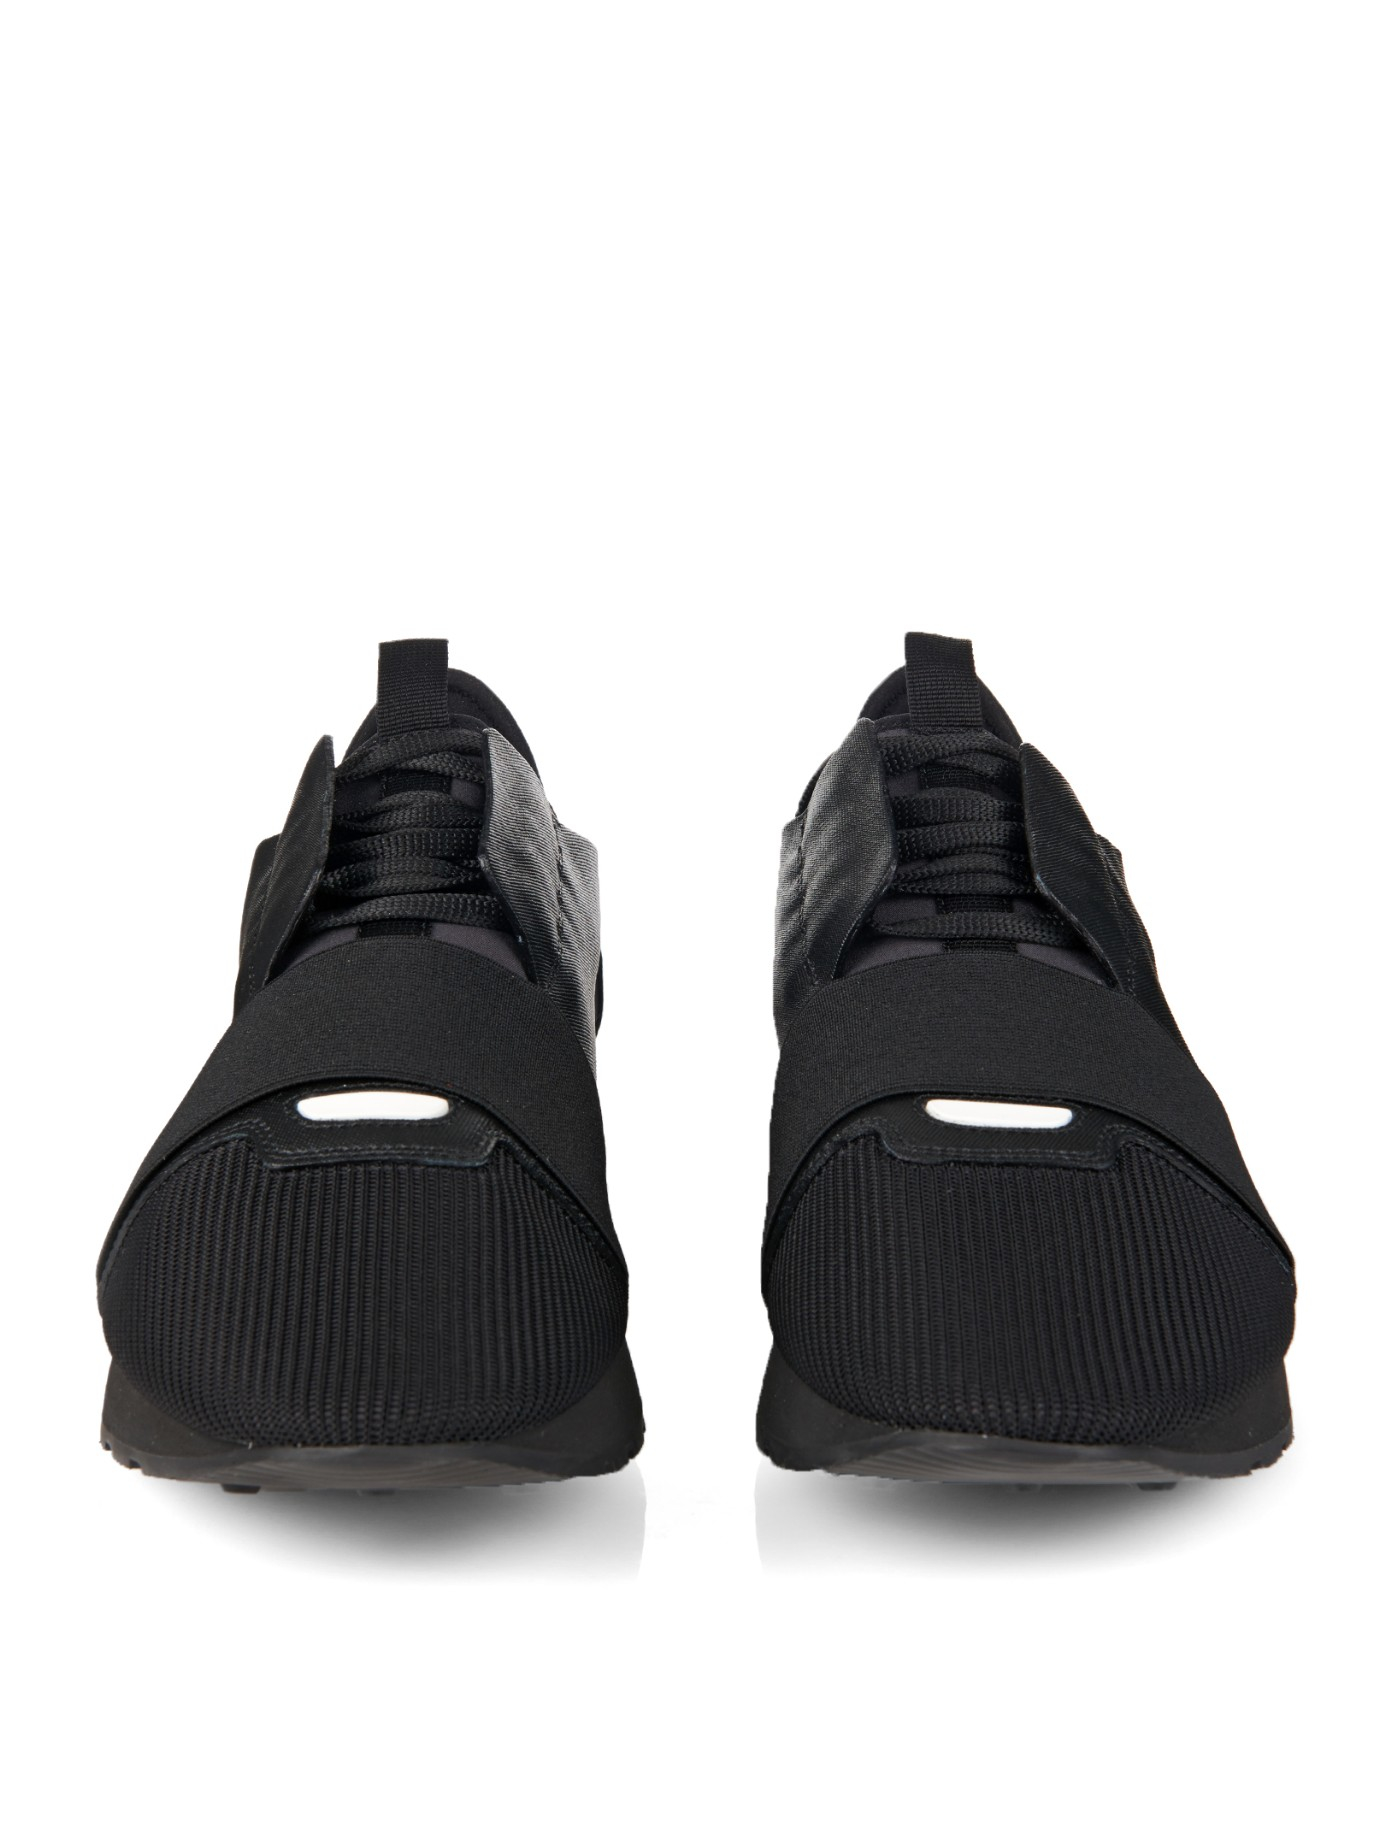 lyst balenciaga leather low top trainers in black for men. Black Bedroom Furniture Sets. Home Design Ideas